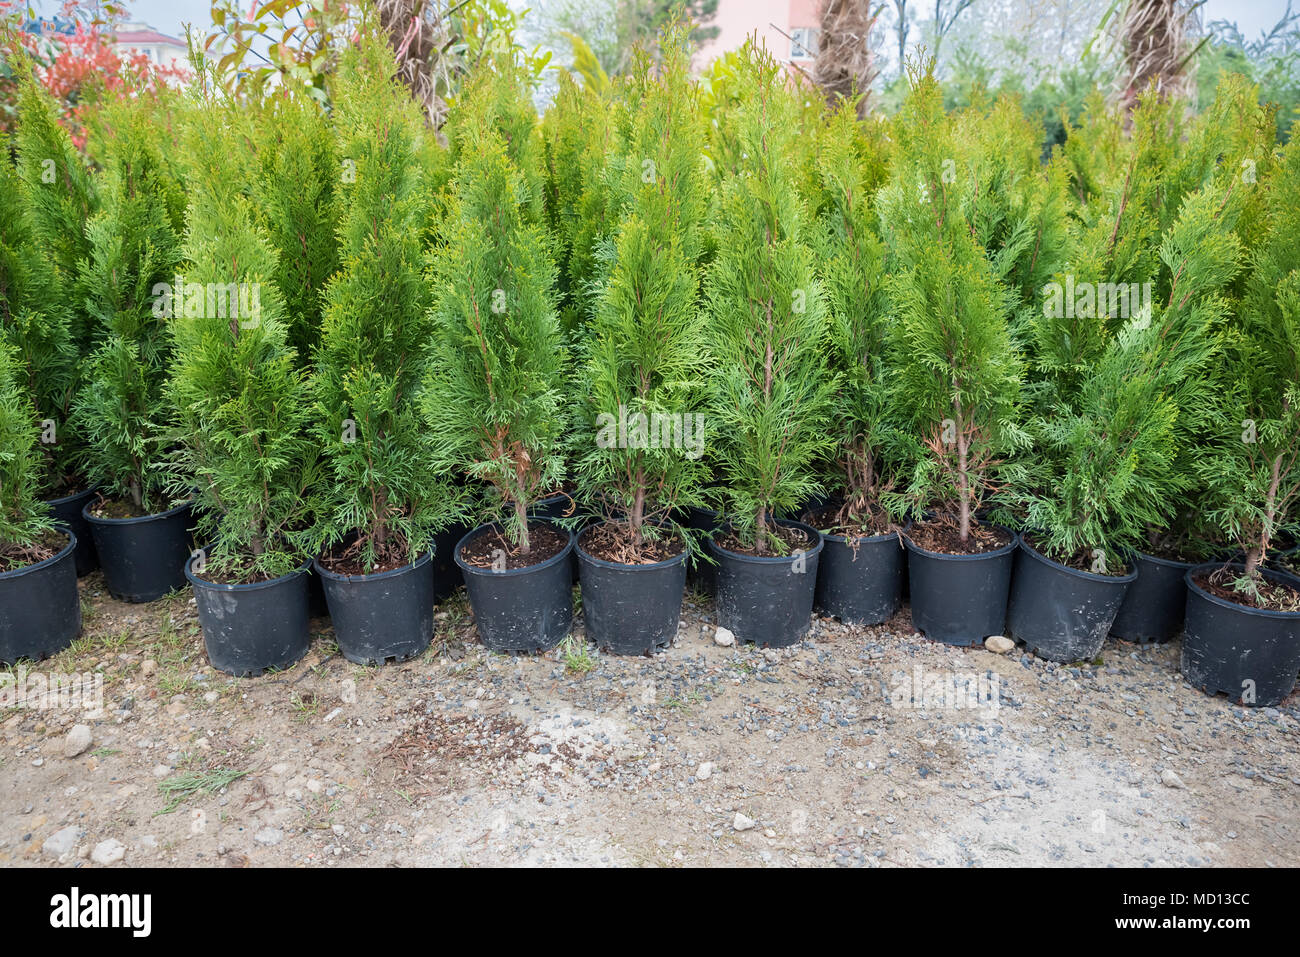 Many Green Hedge of Thuja Trees, or Green hedge of the Tui trees in plastic box for sale Stock Photo